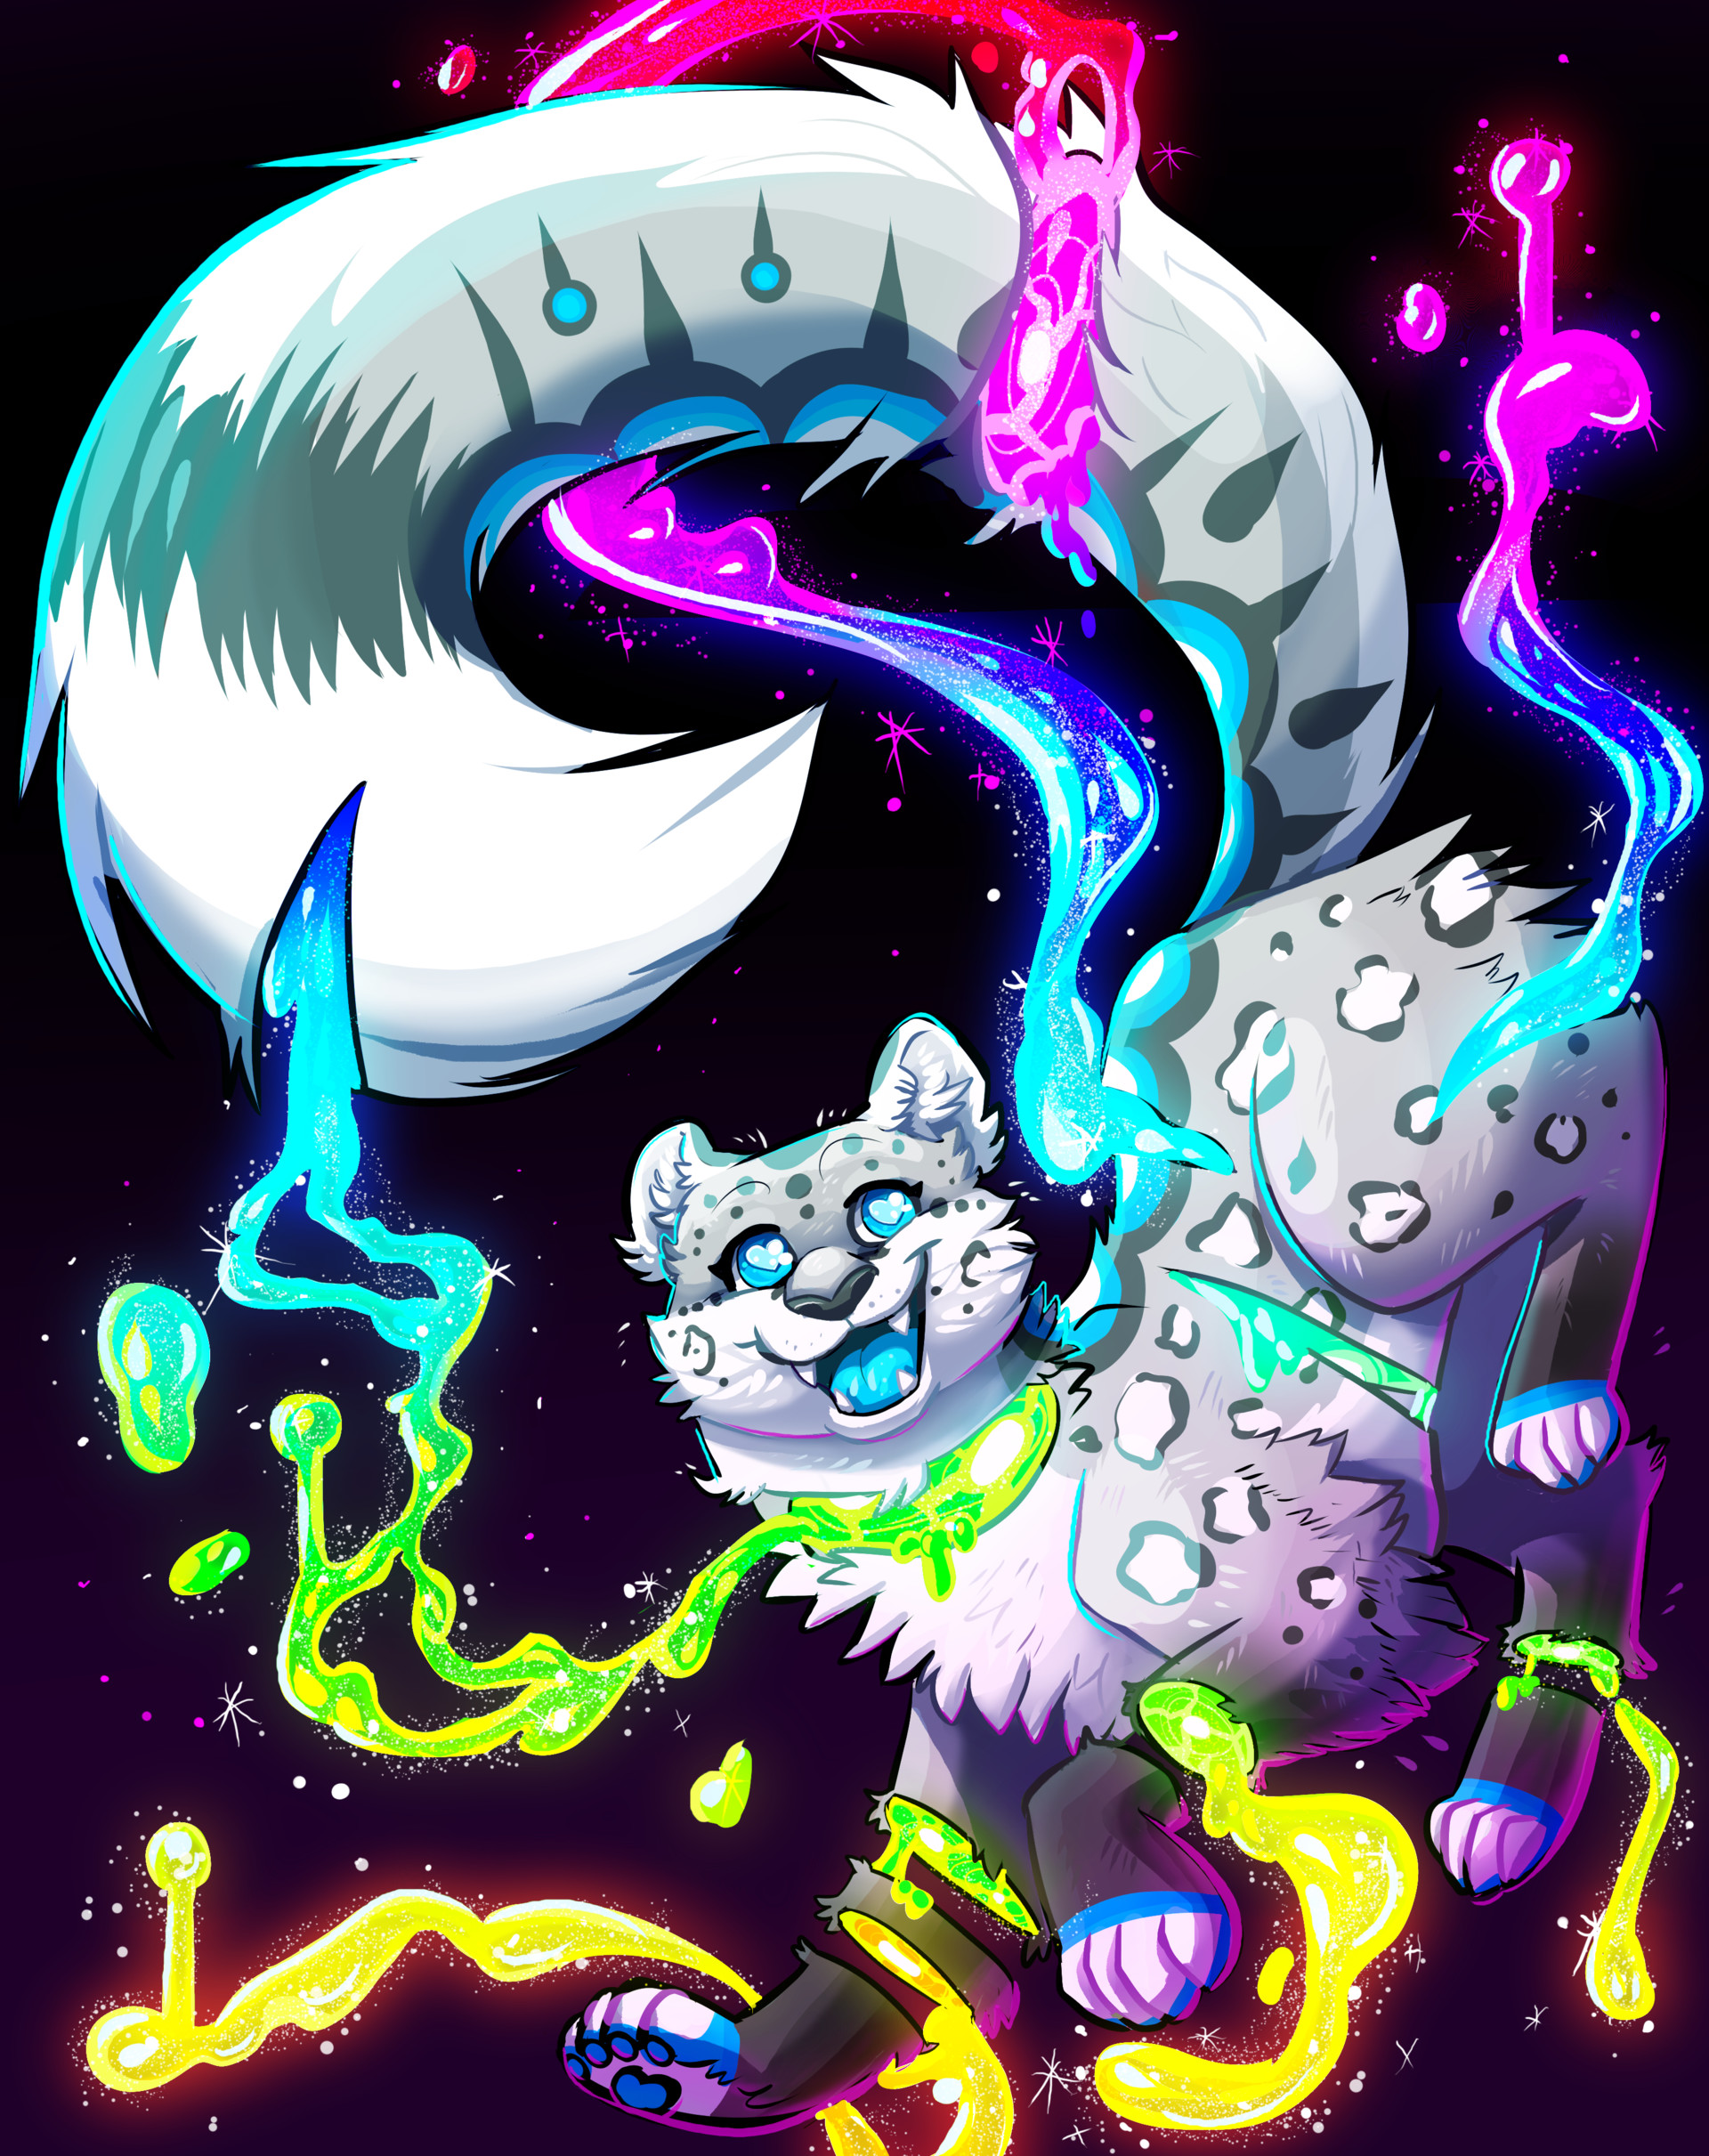 Artstation Candy Gore Snep Shelby Benefield See more ideas about candy gore, furry art, art inspiration. candy gore snep shelby benefield